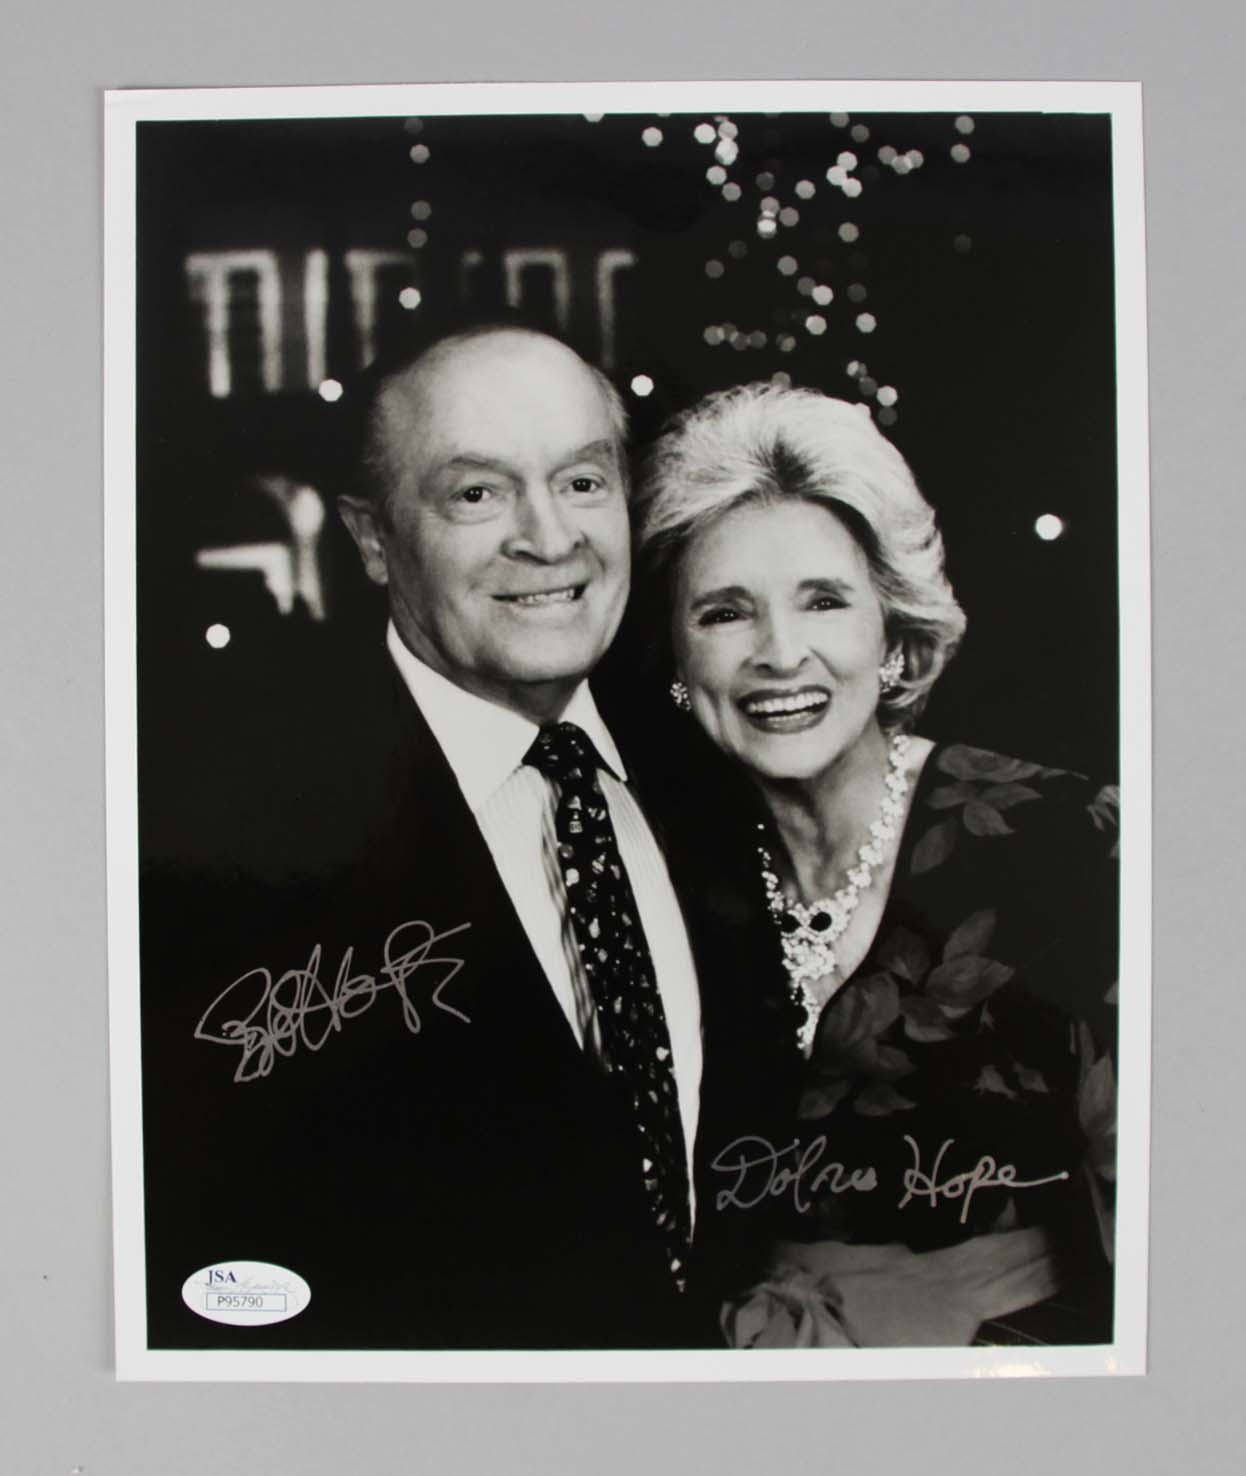 Bob & Dolores Hope Signed 8x10 B/W Photo - COA JSA. Bob & Dolores Hope  Signed 8x10 B/W Photo - COA JSA